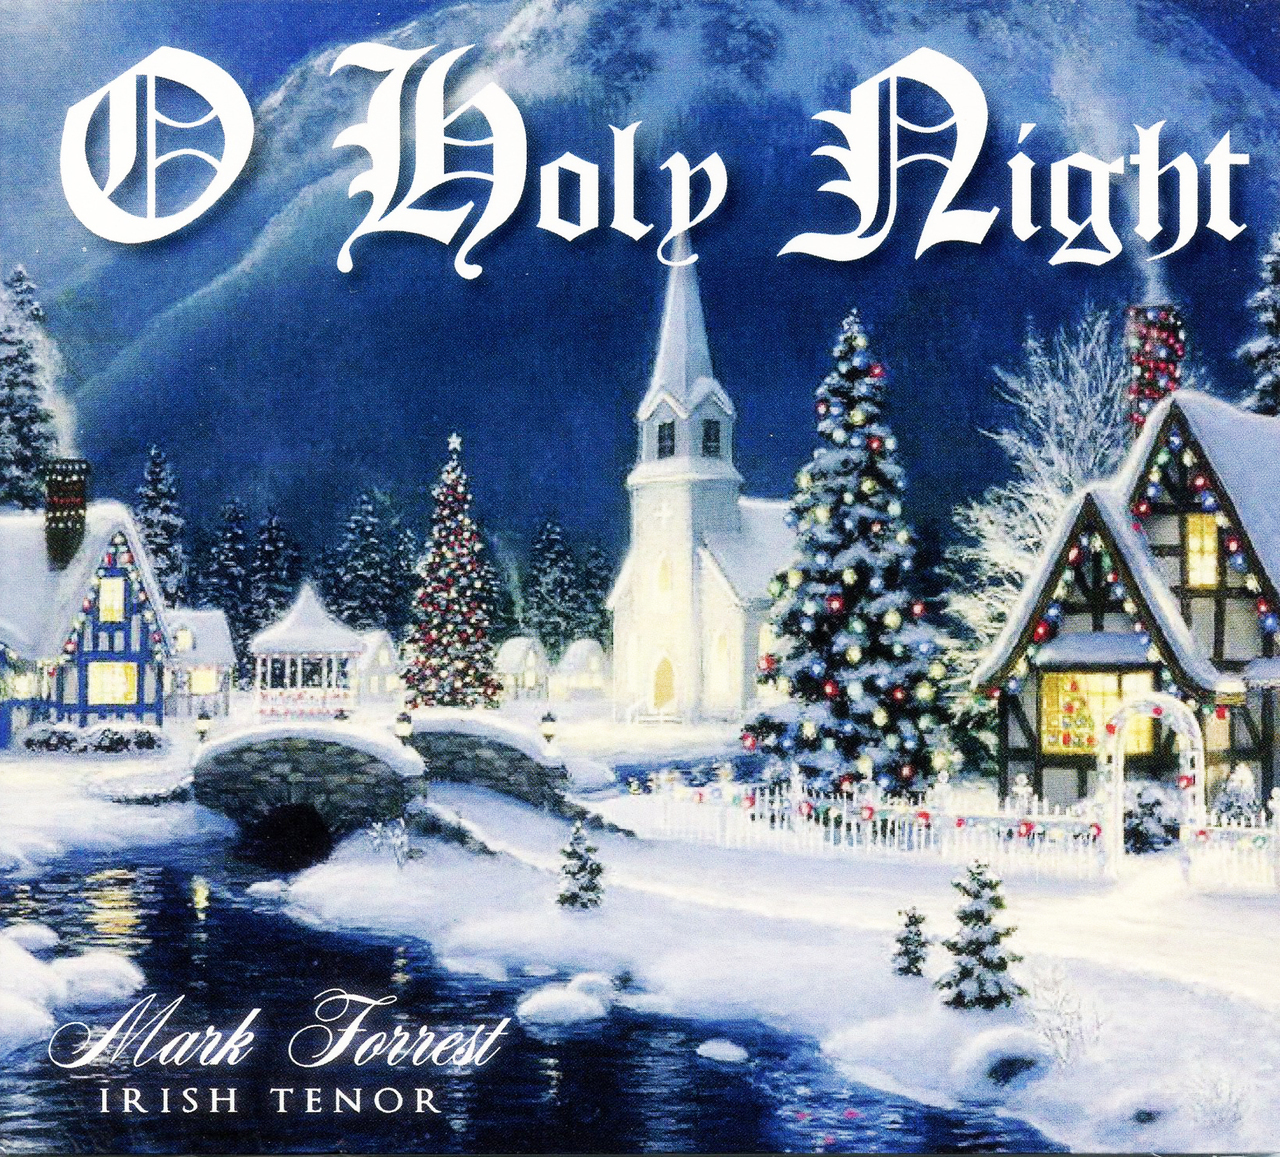 O holy night by mark forrest